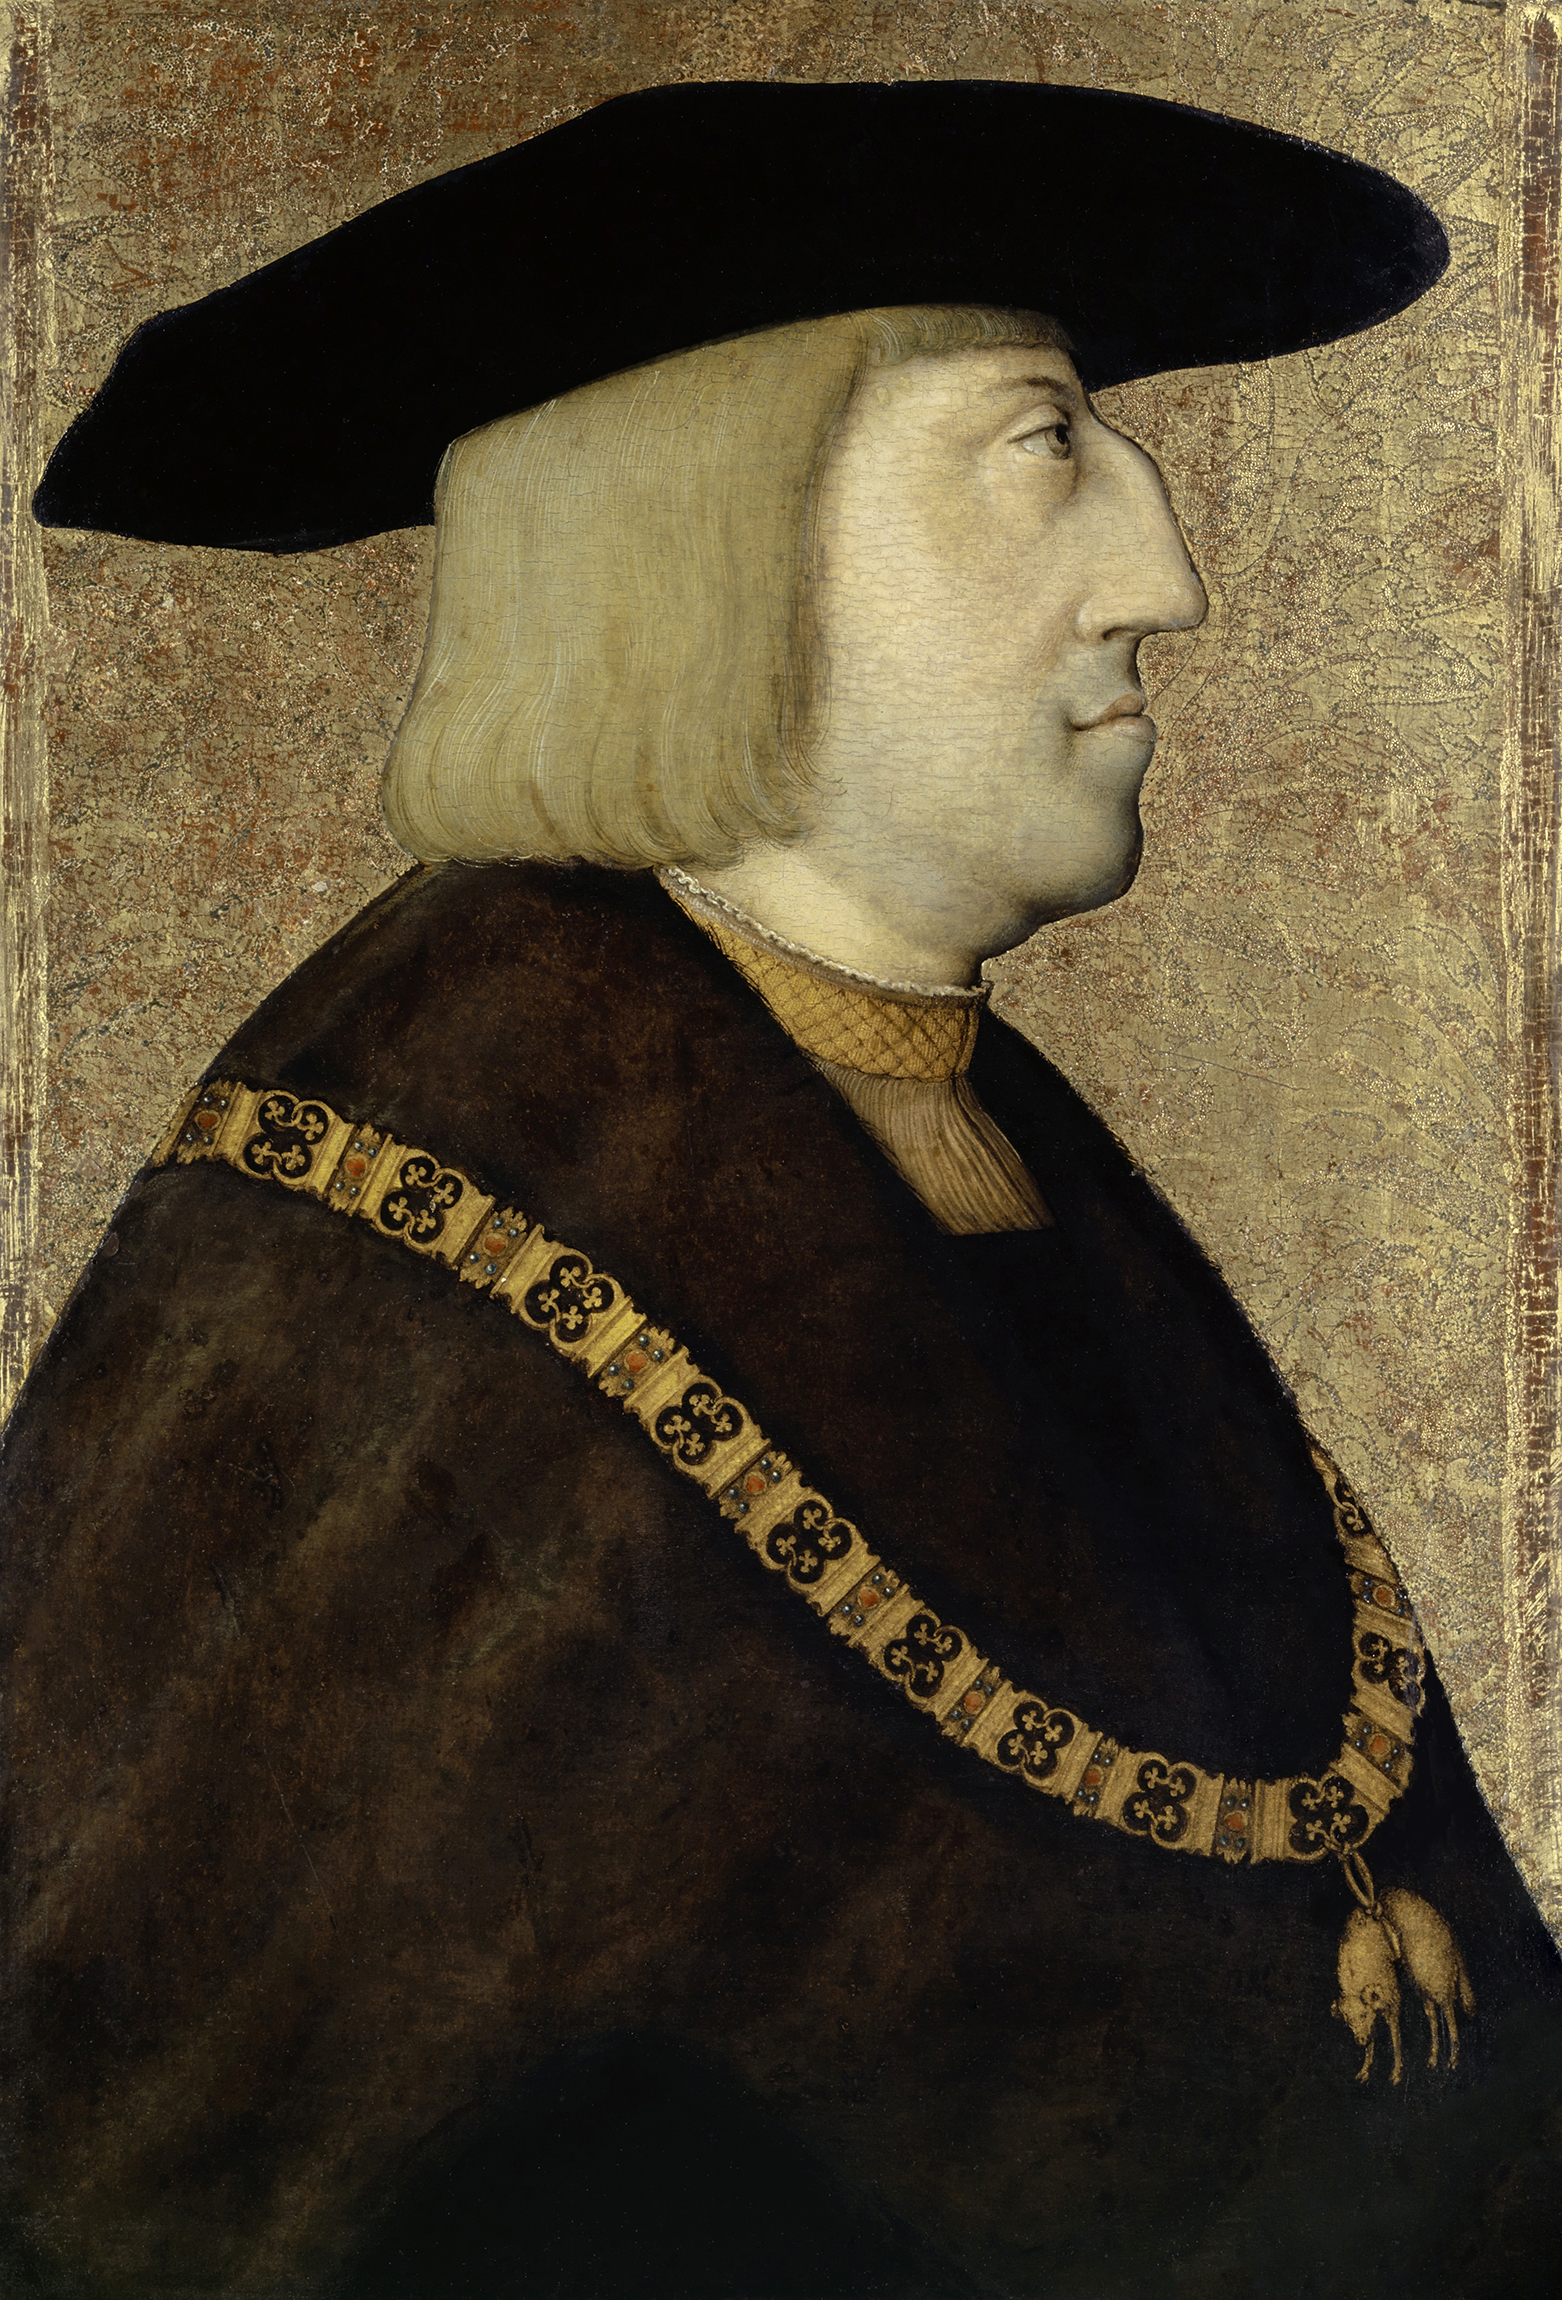 Portrait of Maximilian I (1459-1519), King of the Romans (1486), Archduke of Austria, Holy Roman Emperor (1493), Duke of Brabant, Limburg, Lothier, Luxemburg and Guelders, Margrave of Namur, Count of Zutphen, Artois, Flanders, Charolais, Hainaut, Holland and Zeeland, Count Palatine of Burgundy (with Mary of Burgundy) from 1477 to 1482. | Portraits of Kings